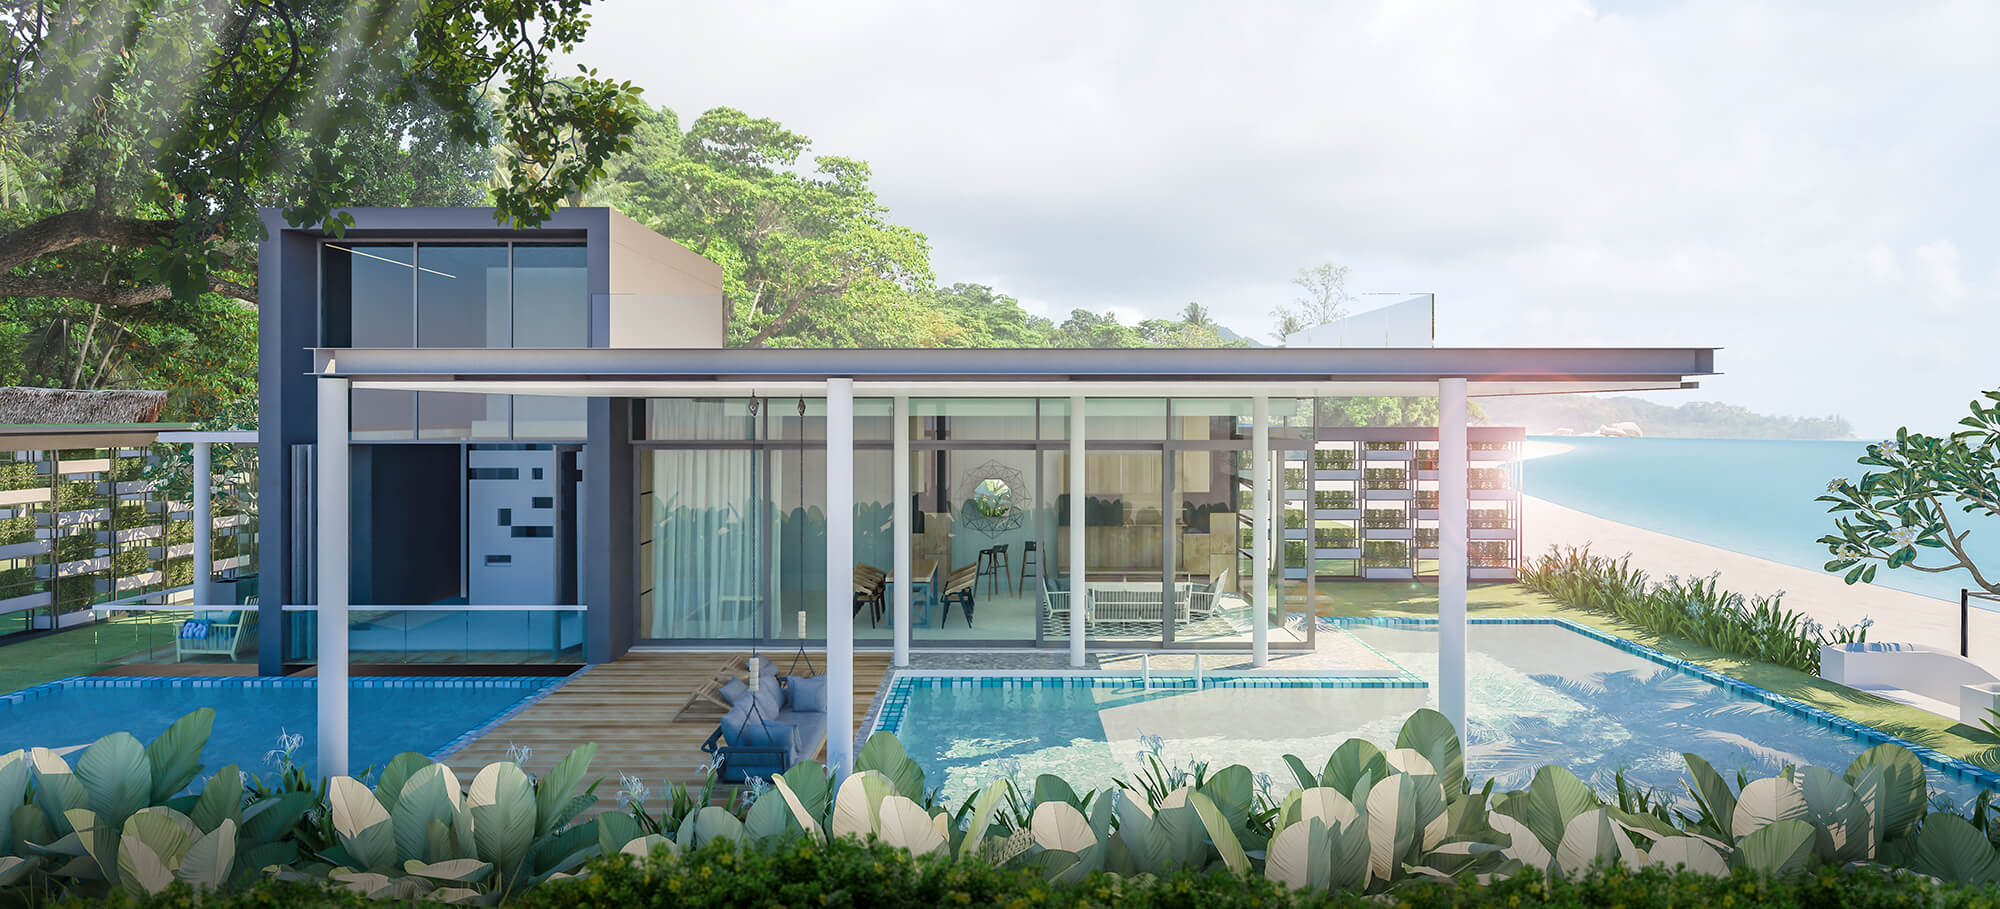 Caribbean style home open living footsteps from the white sand and aqua blue ocean.